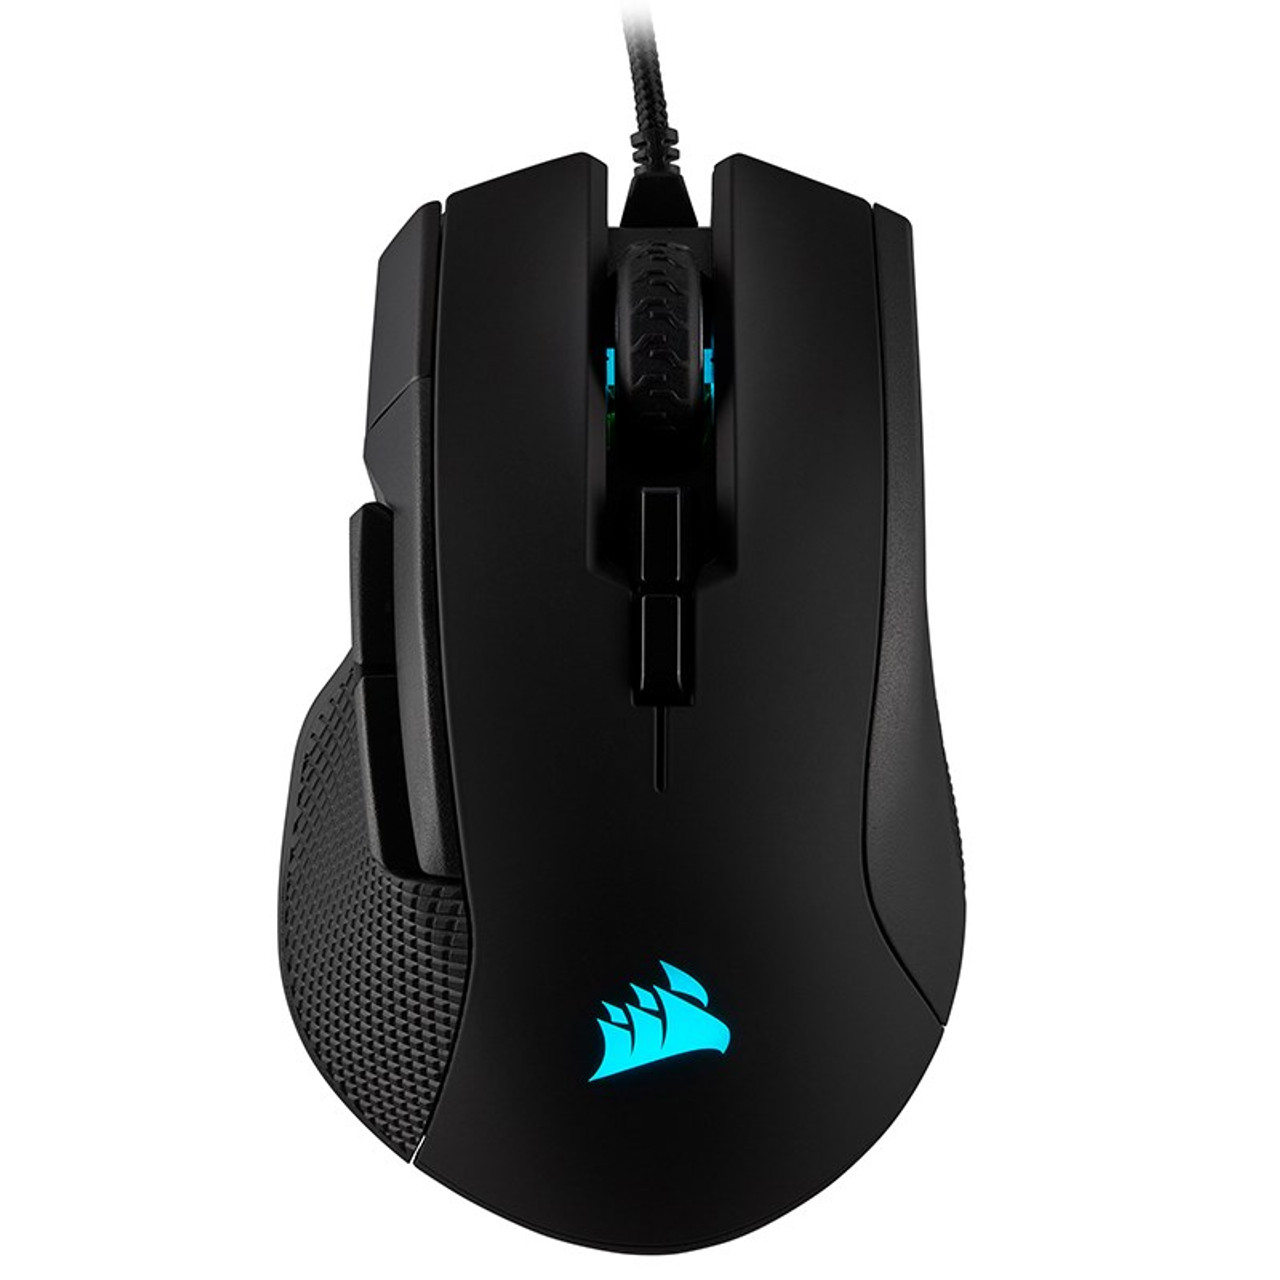 Product image for Corsair IRONCLAW RGB Optical Gaming Mouse | CX Computer Superstore